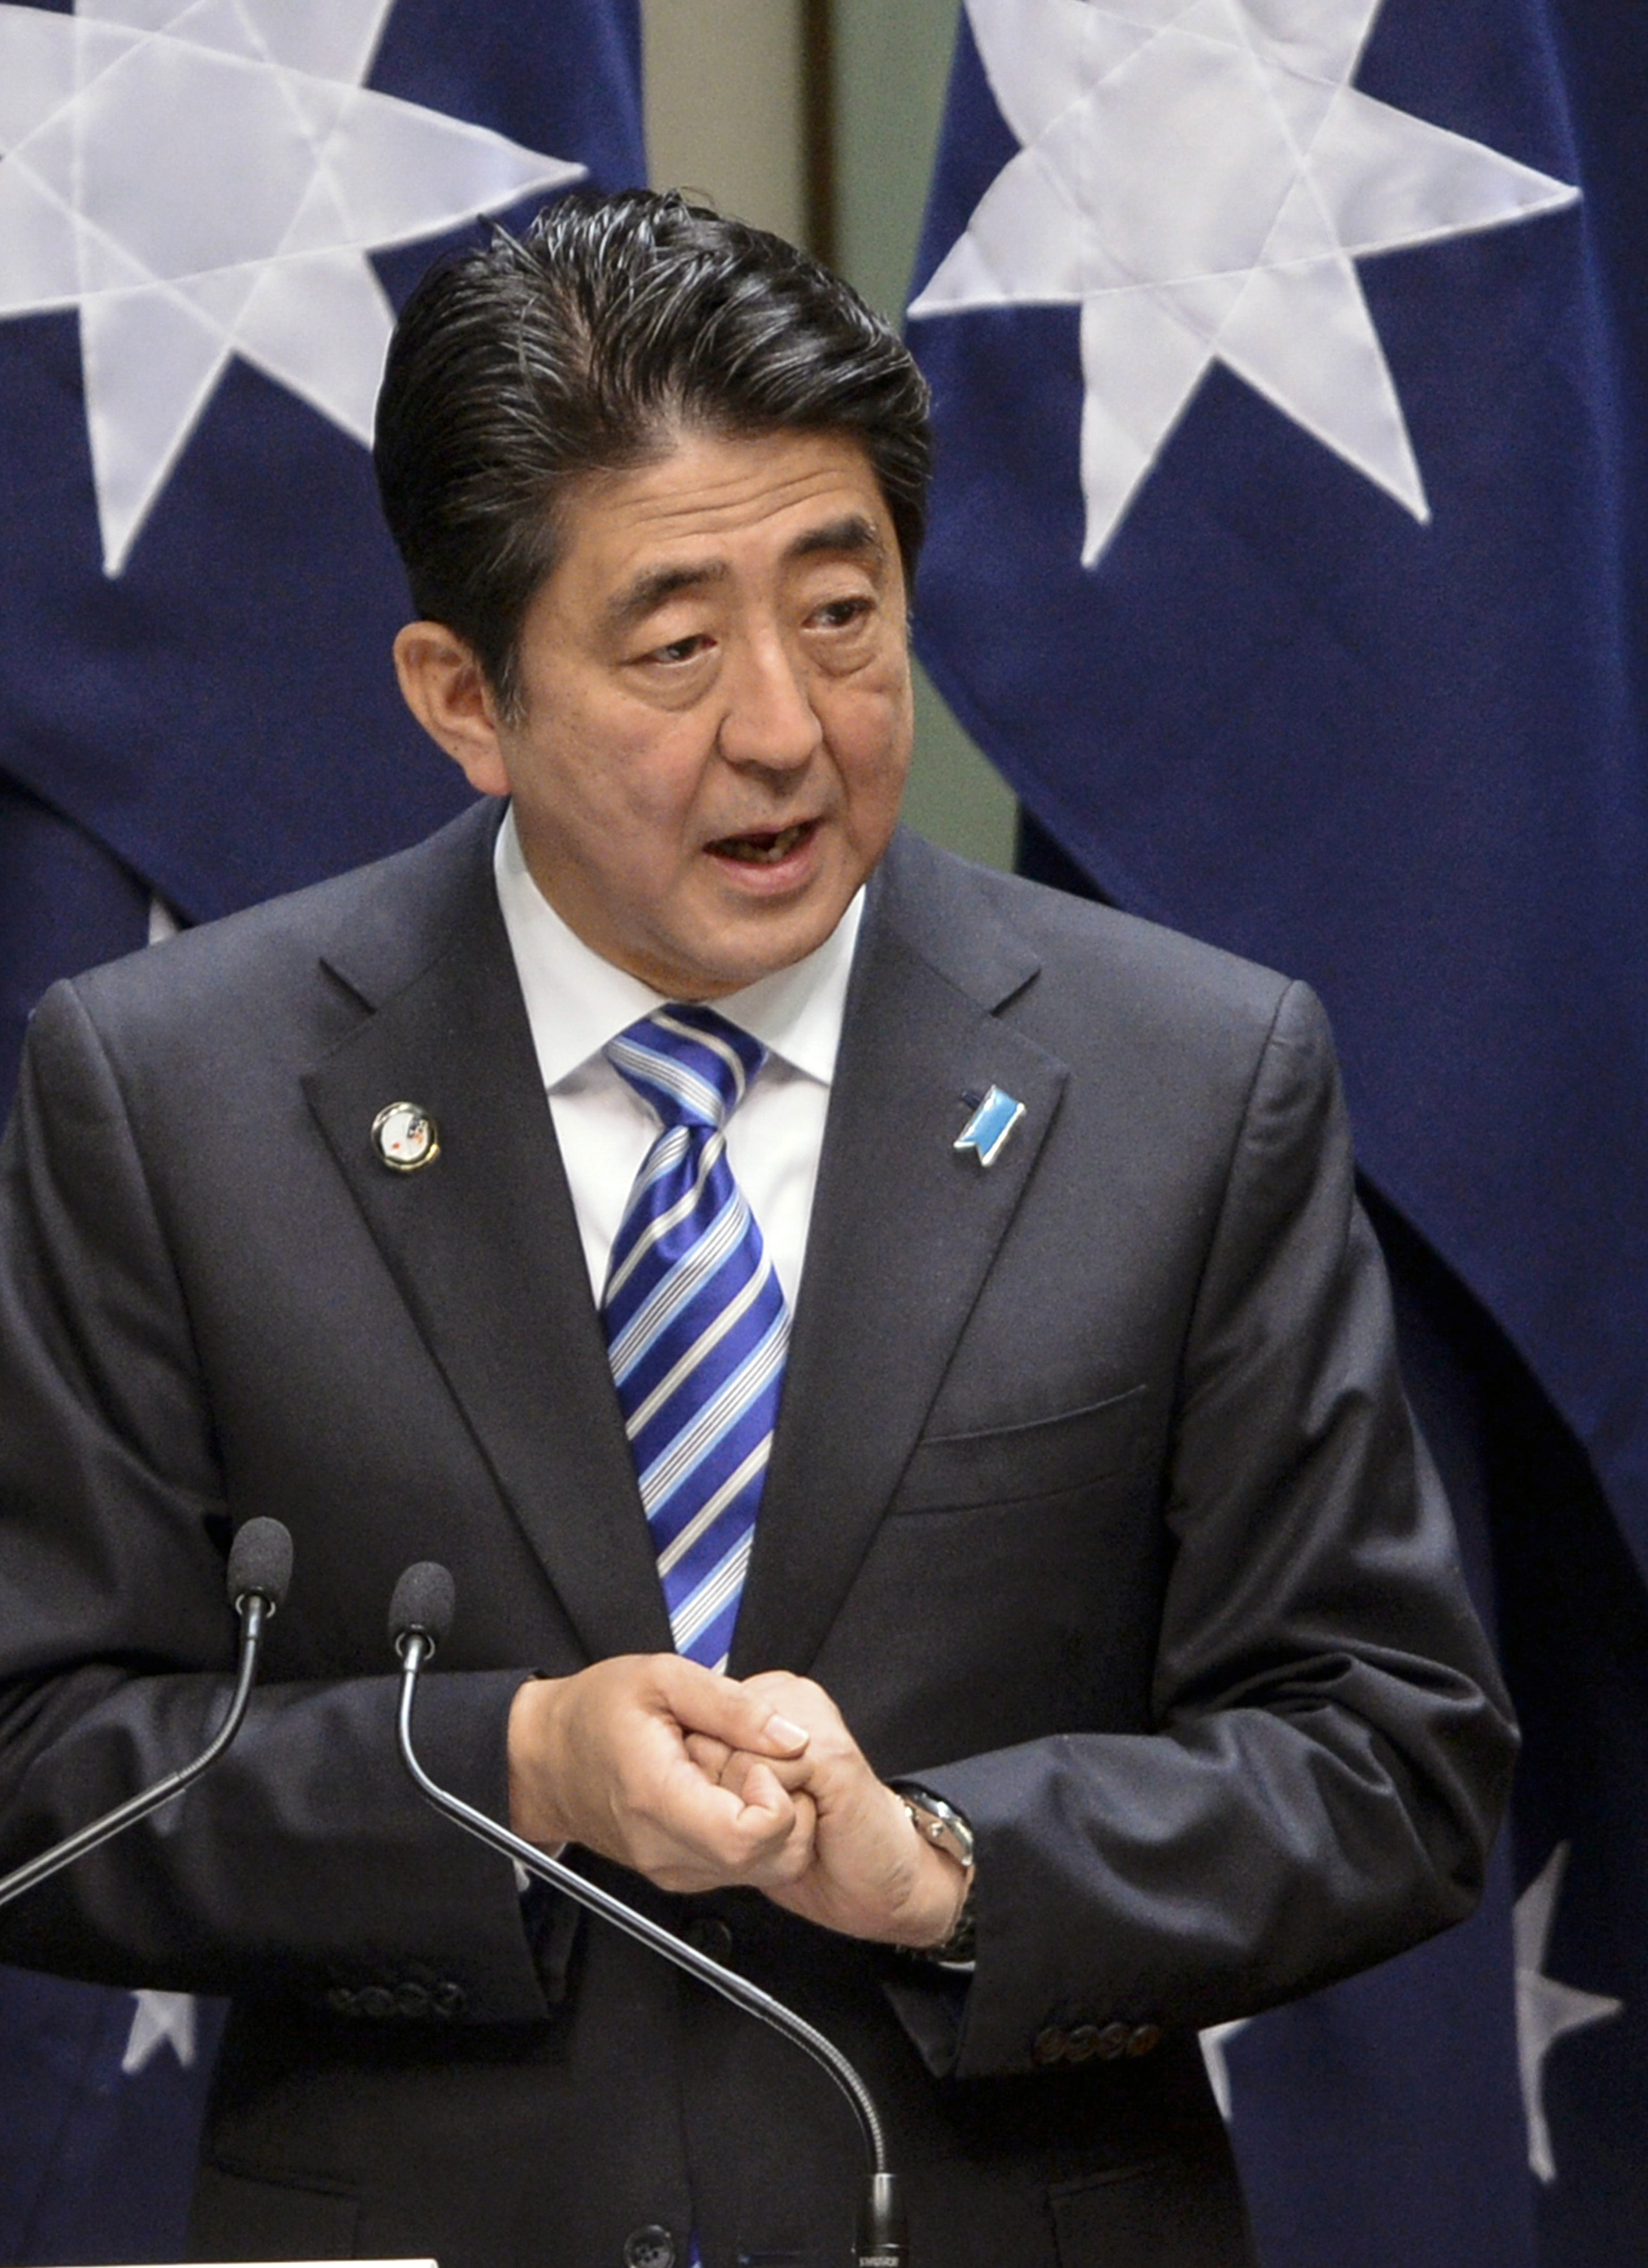 Japan's Prime Minister Shinzo Abe delivers an address to both houses of parliament in Australia's House of Representatives chamber at Parliament House in Canberra July 8, 2014.